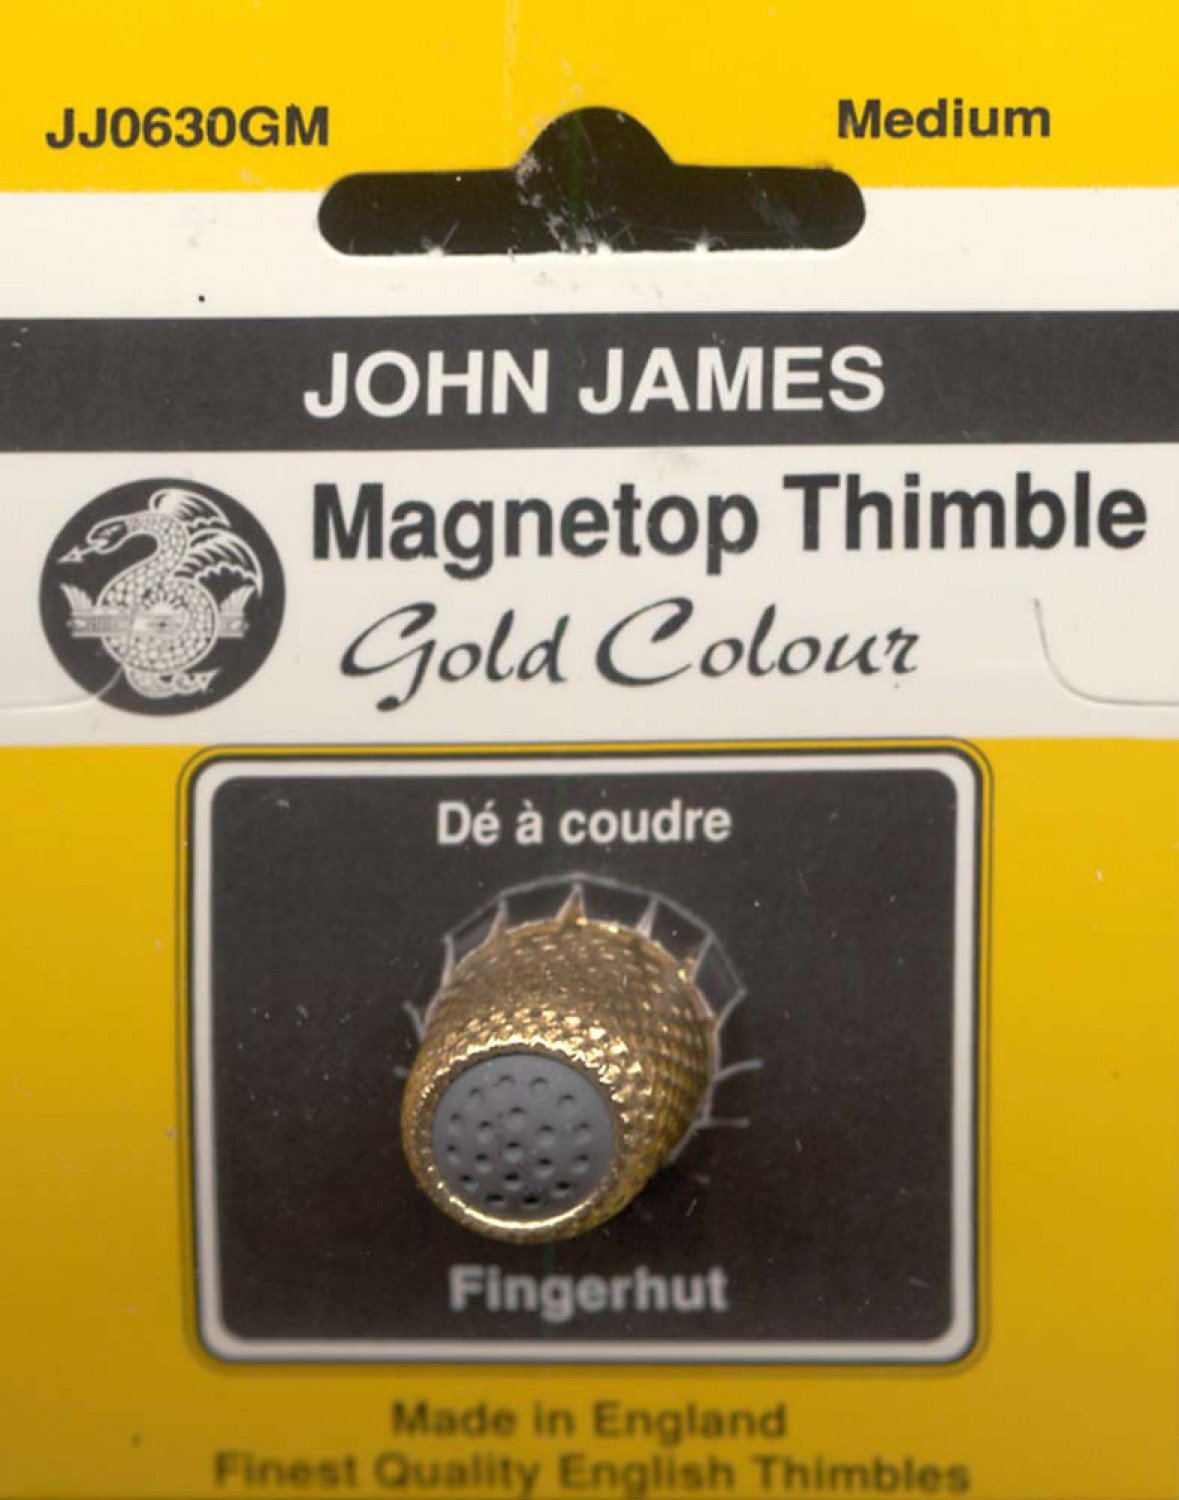 John James - Magnatop Thimble Gold - JJ0630GM - MEDIUM